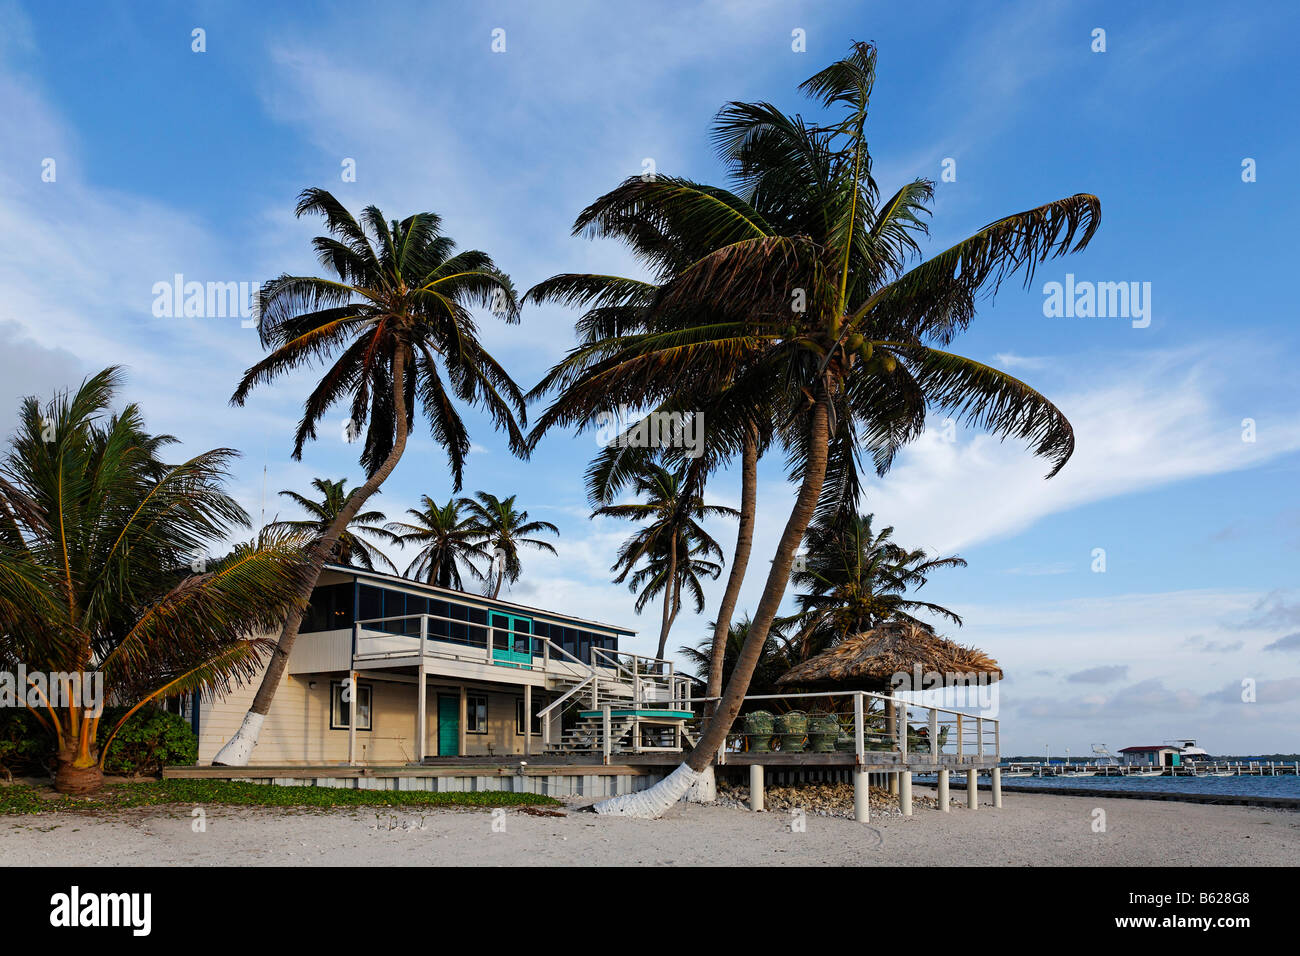 Bungalow, Turneffe Flats, Turneffe Atoll, Belize, Central America, Caribbean - Stock Image